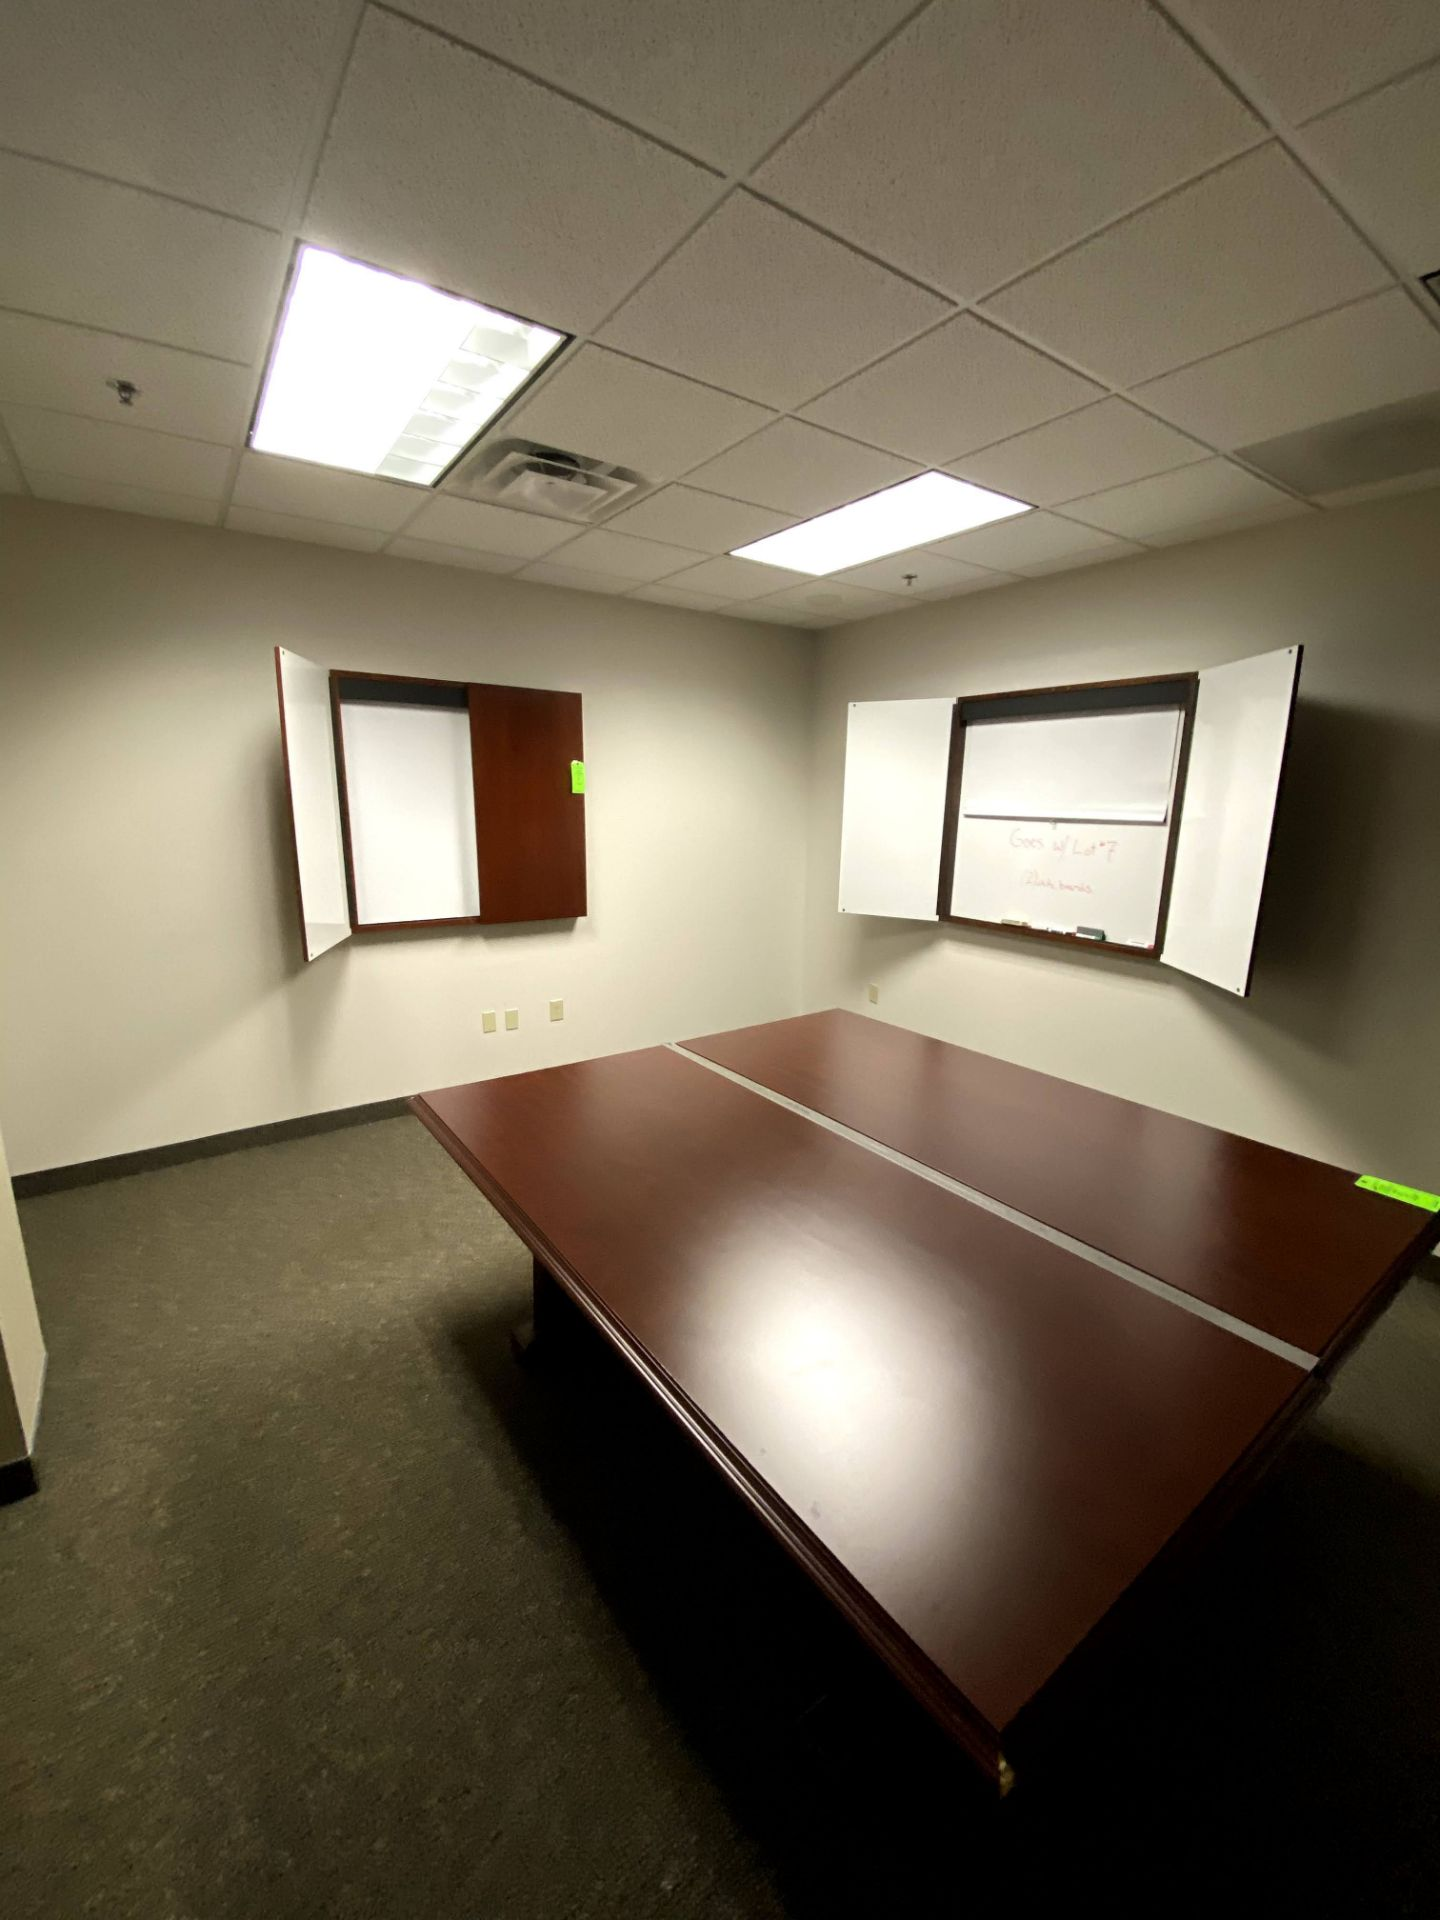 (2) CHERRY WOOD WALL MOUNTED DRY ERASE BOARD(S) - 1 WITH PULL DOWN SCREEN -- (7625 OMNITECH PLACE - Image 3 of 3